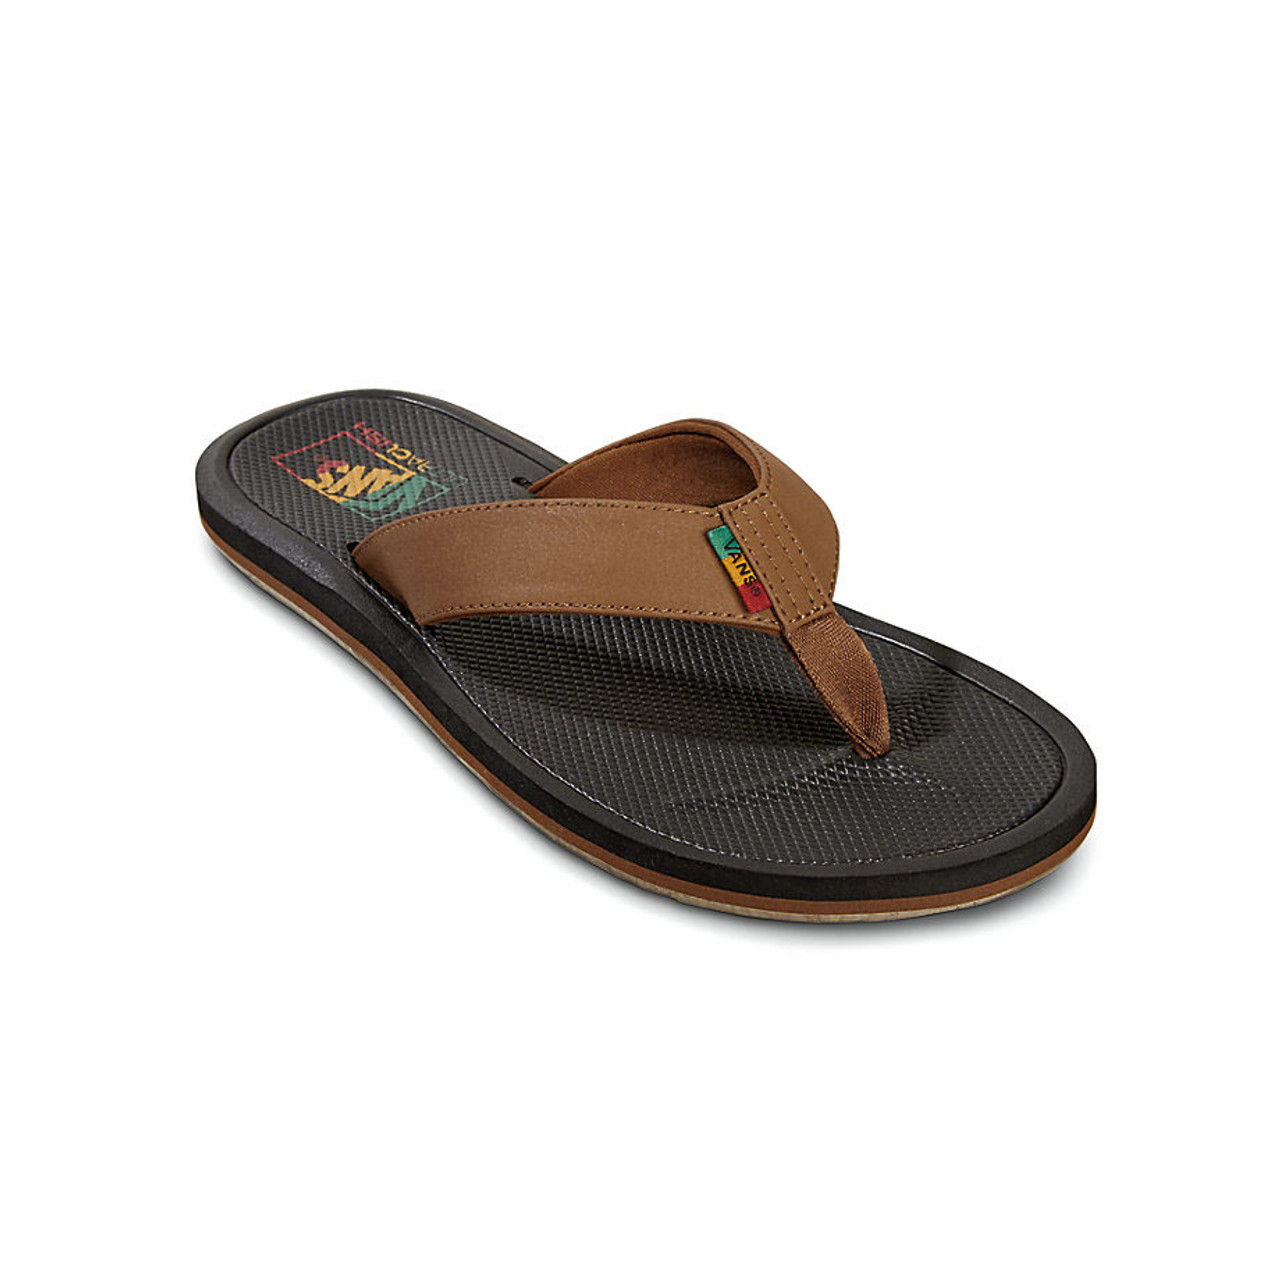 2a59376b2408 Vans Flip Flop - Nexpa Synthetic - Dachshund Black Rasta - Surf and Dirt